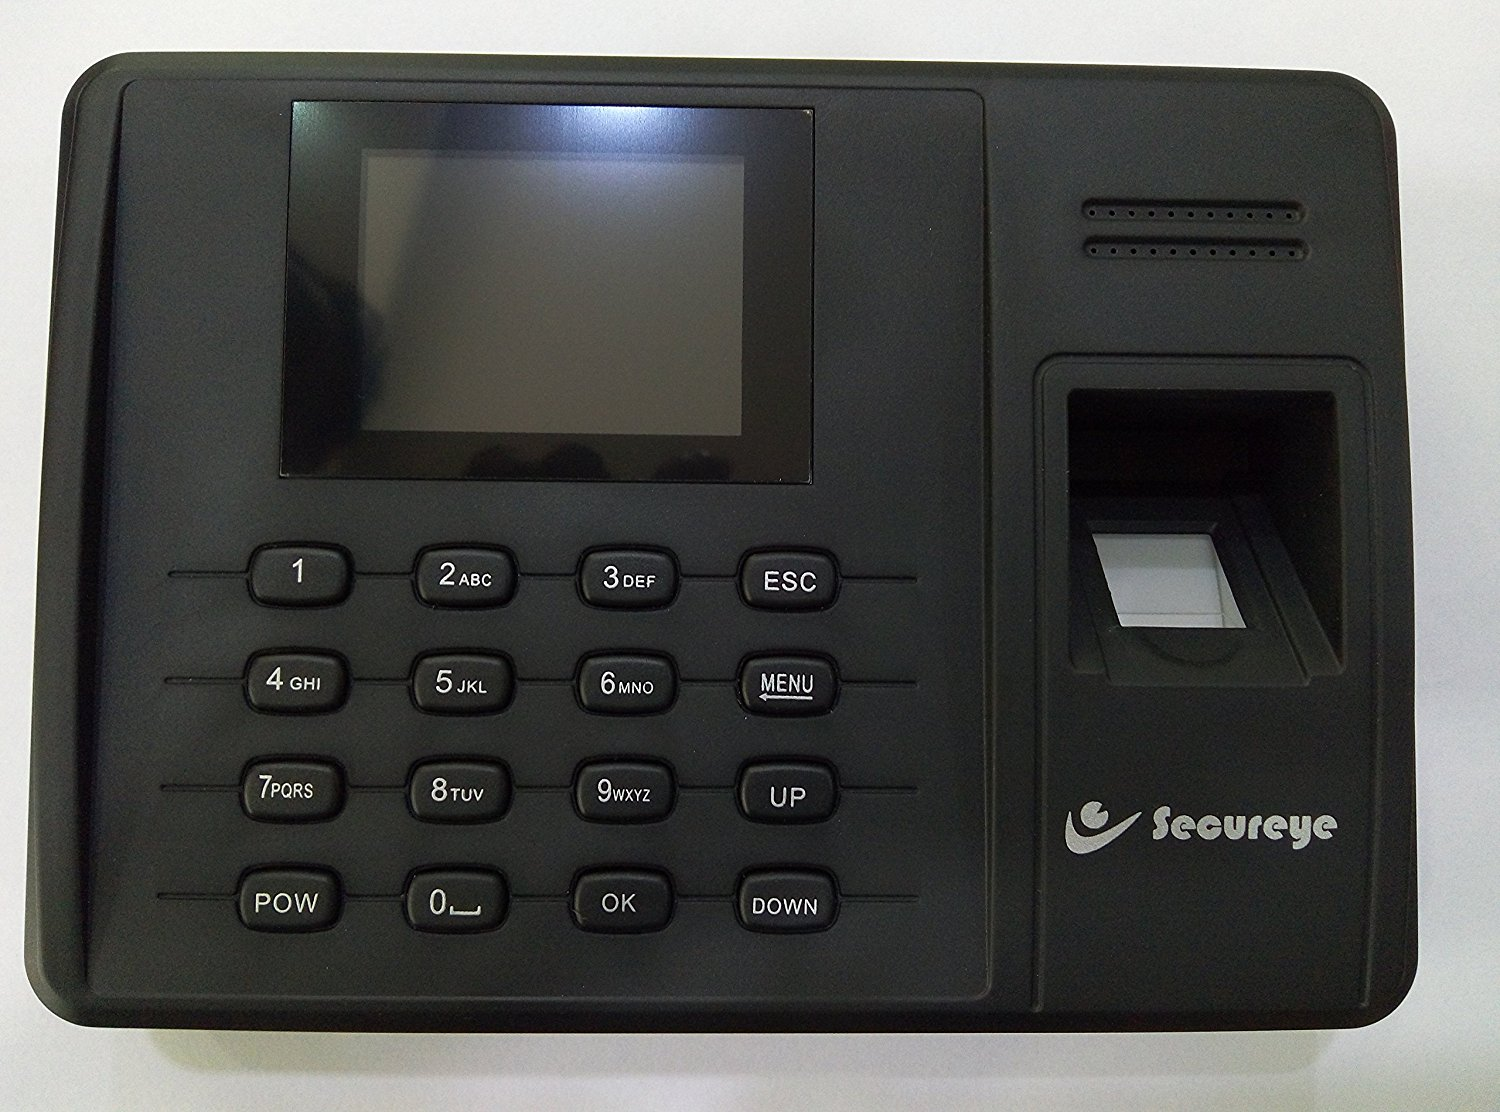 Secureye S-B50 Biometric Machine